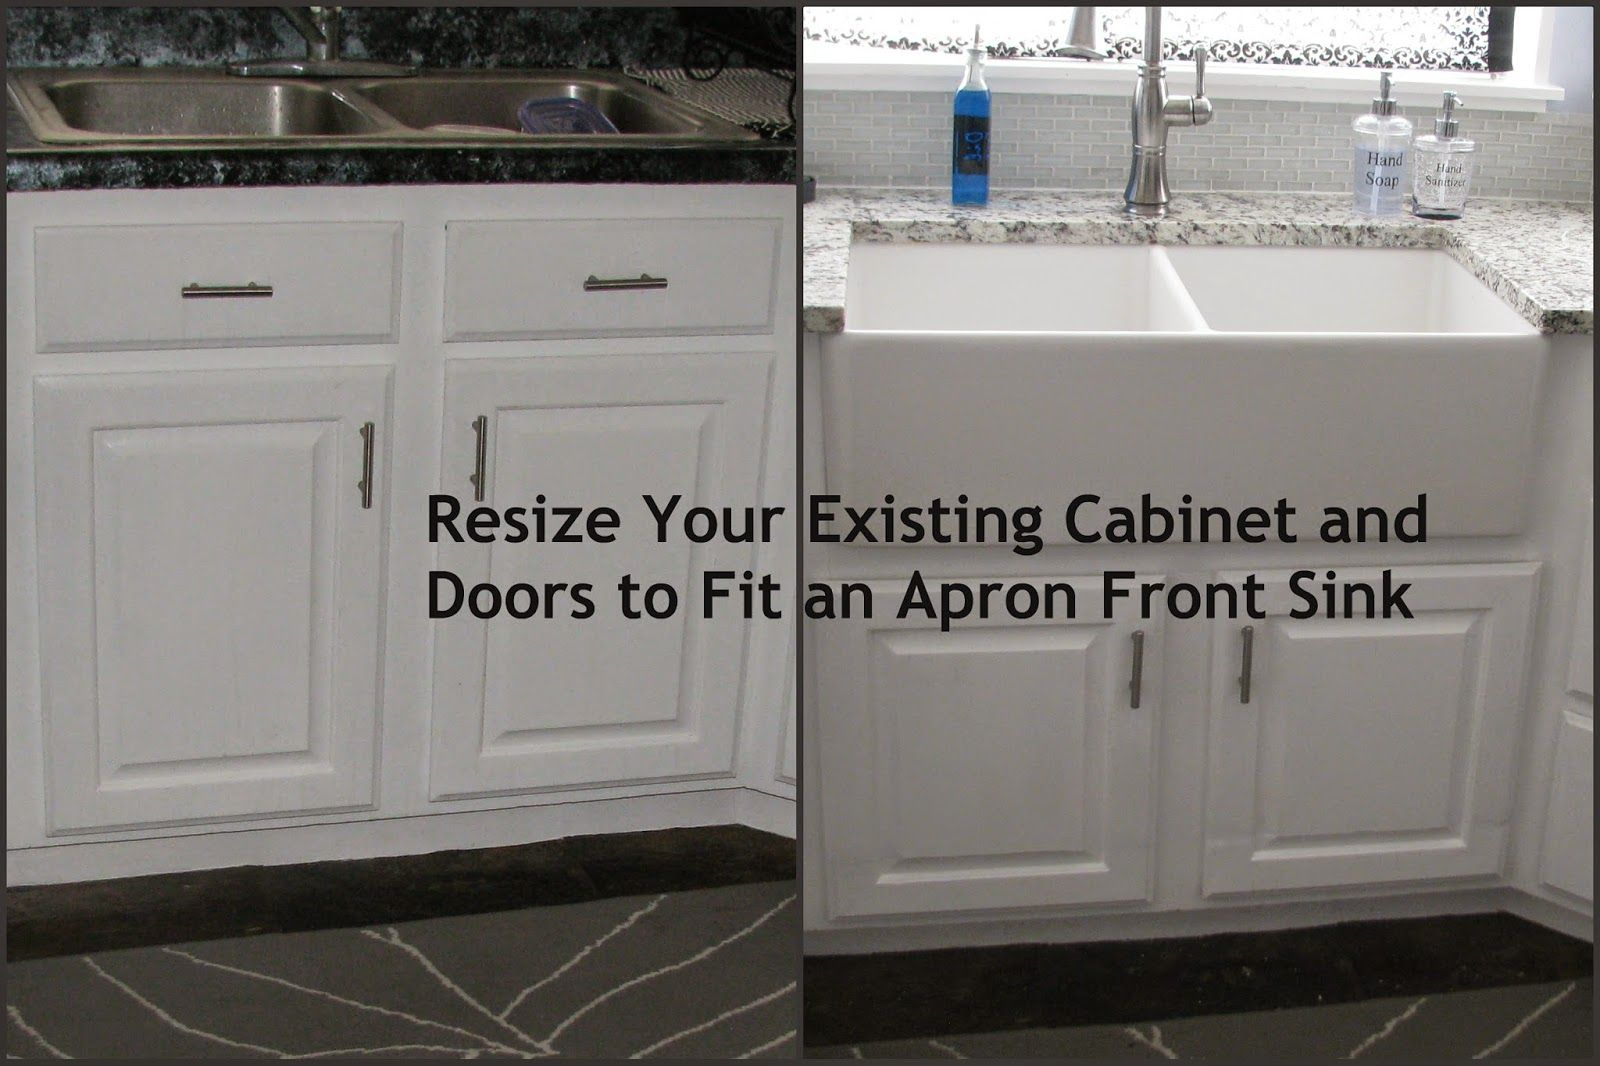 Resize Your Existing Cabinet And Doors To Fit An Apron Front Sink